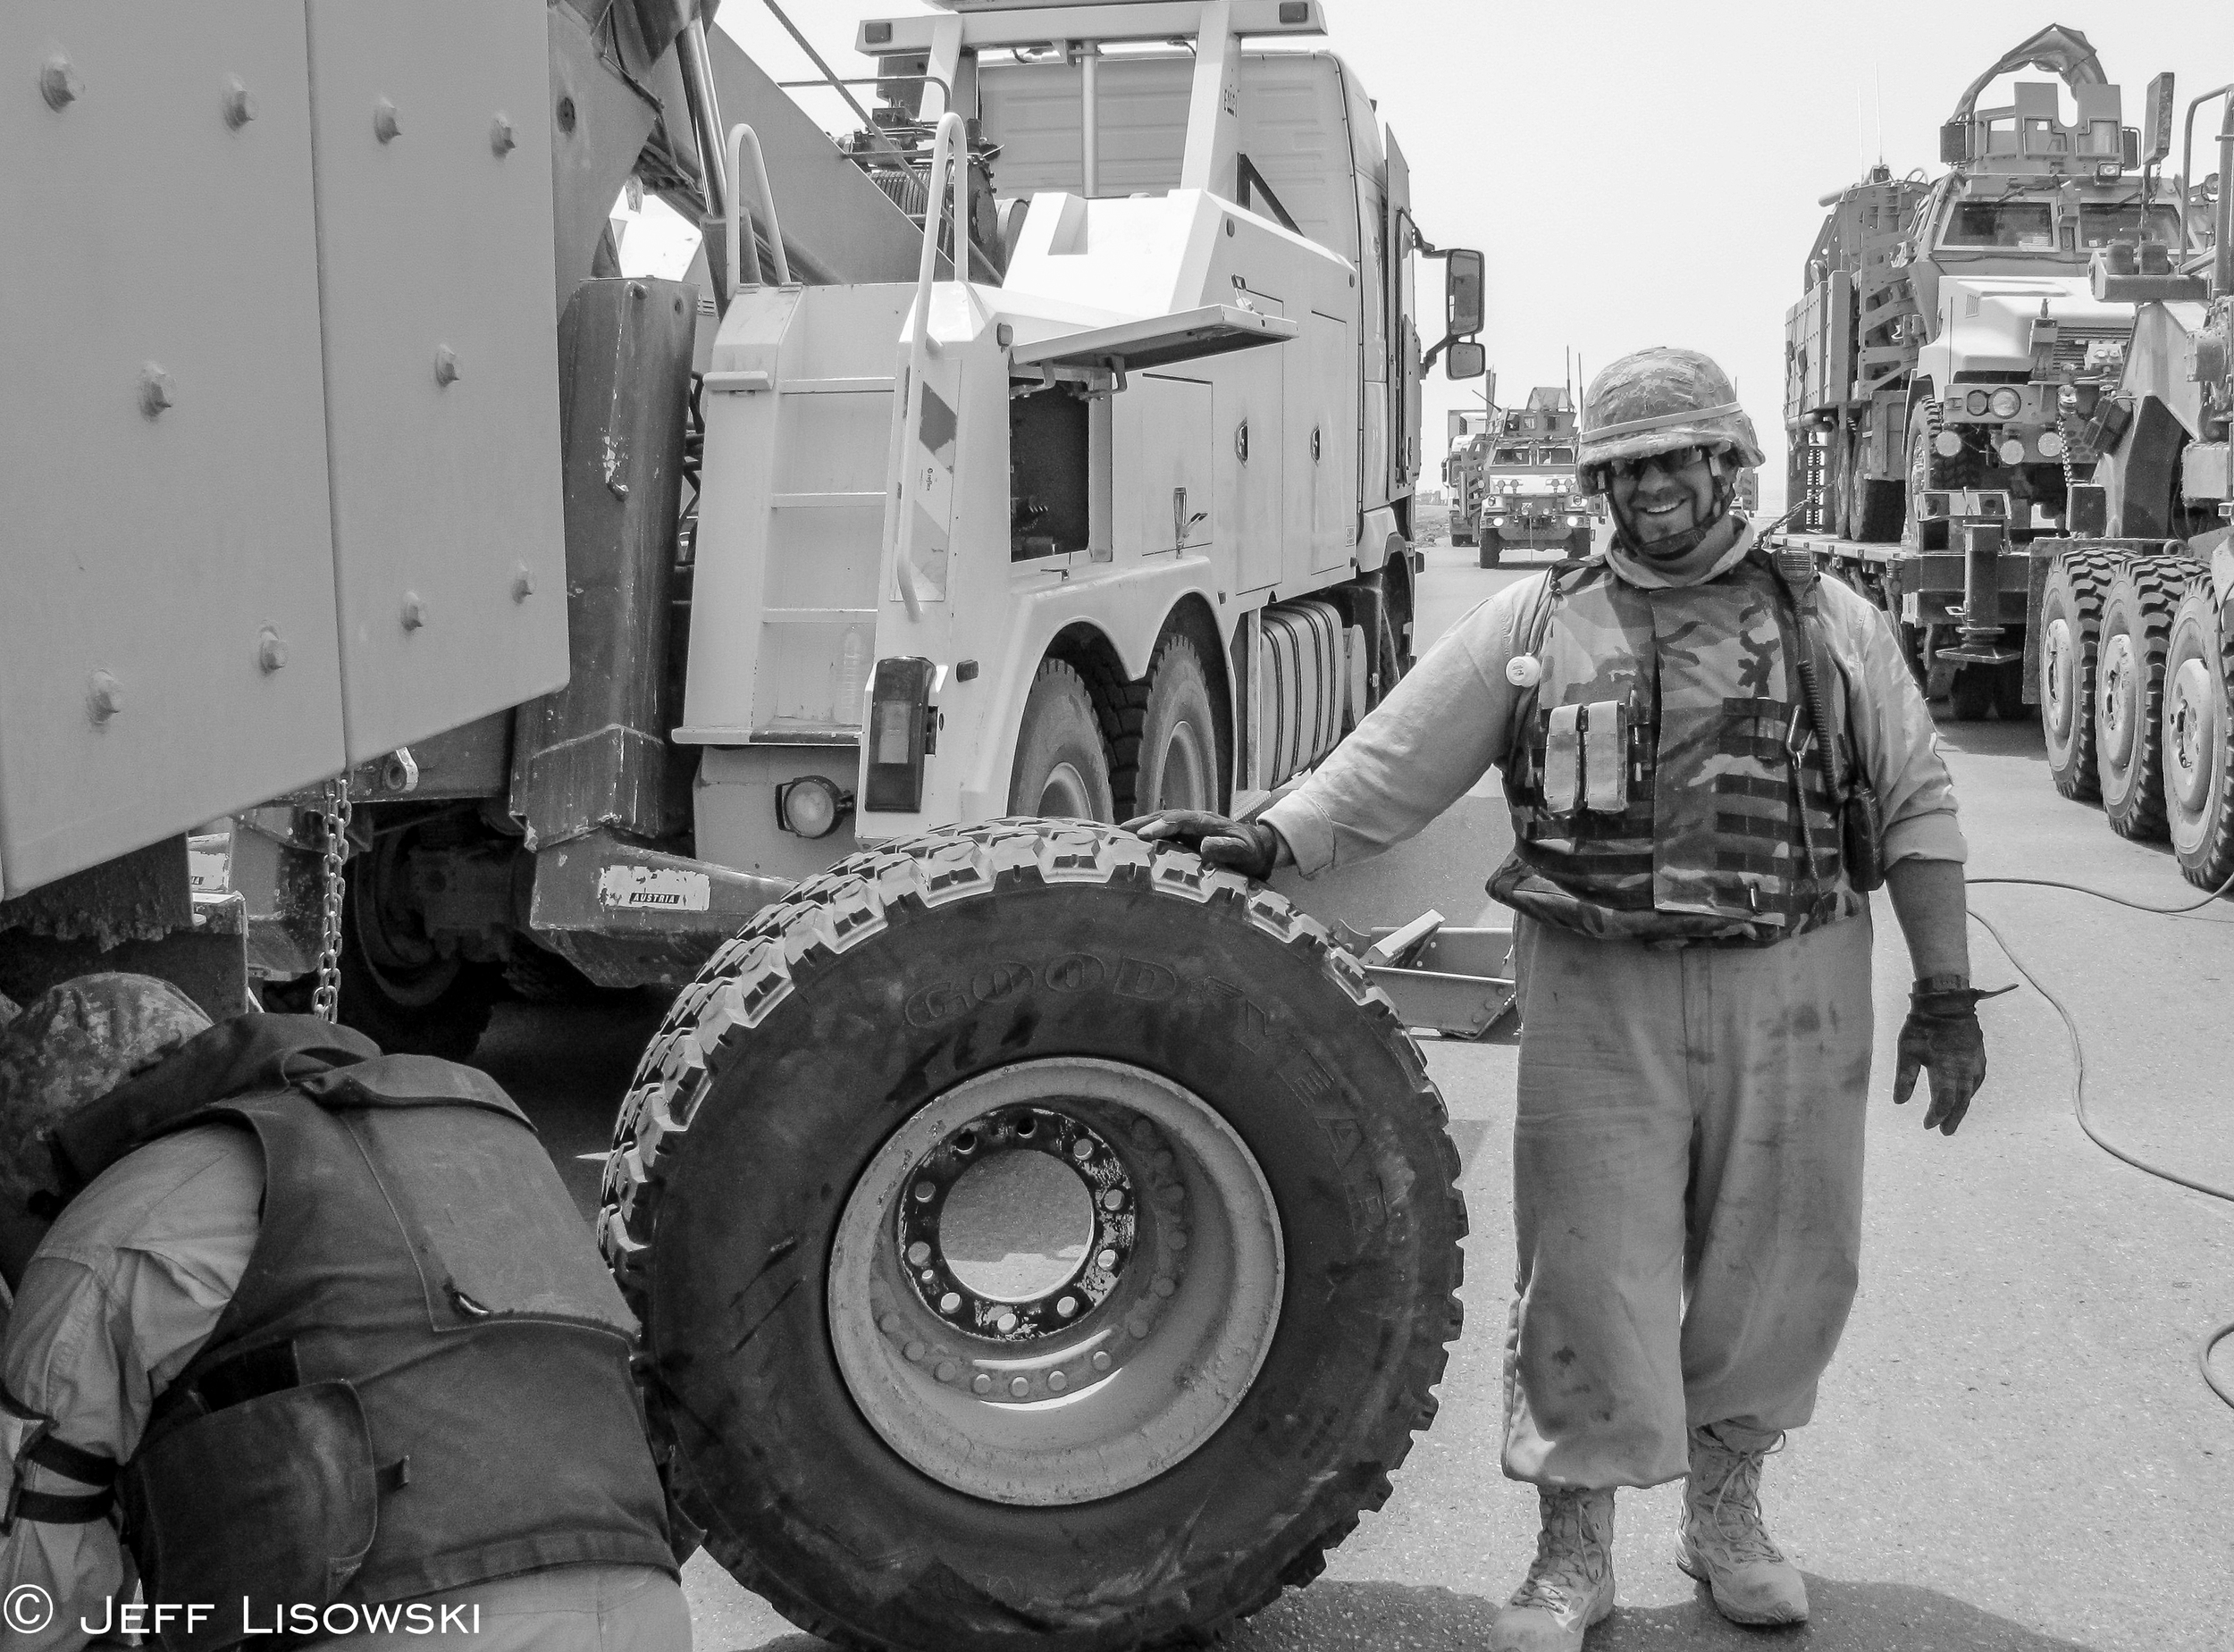 Ken Brower holding an MRAP spare tire- we kept one chained on the HET trailer deck just in case.The summer months meant flat tires for MRAPs on Tampa. All the money and technology into the equipment, but no place for a spare tire. Good job engineers.